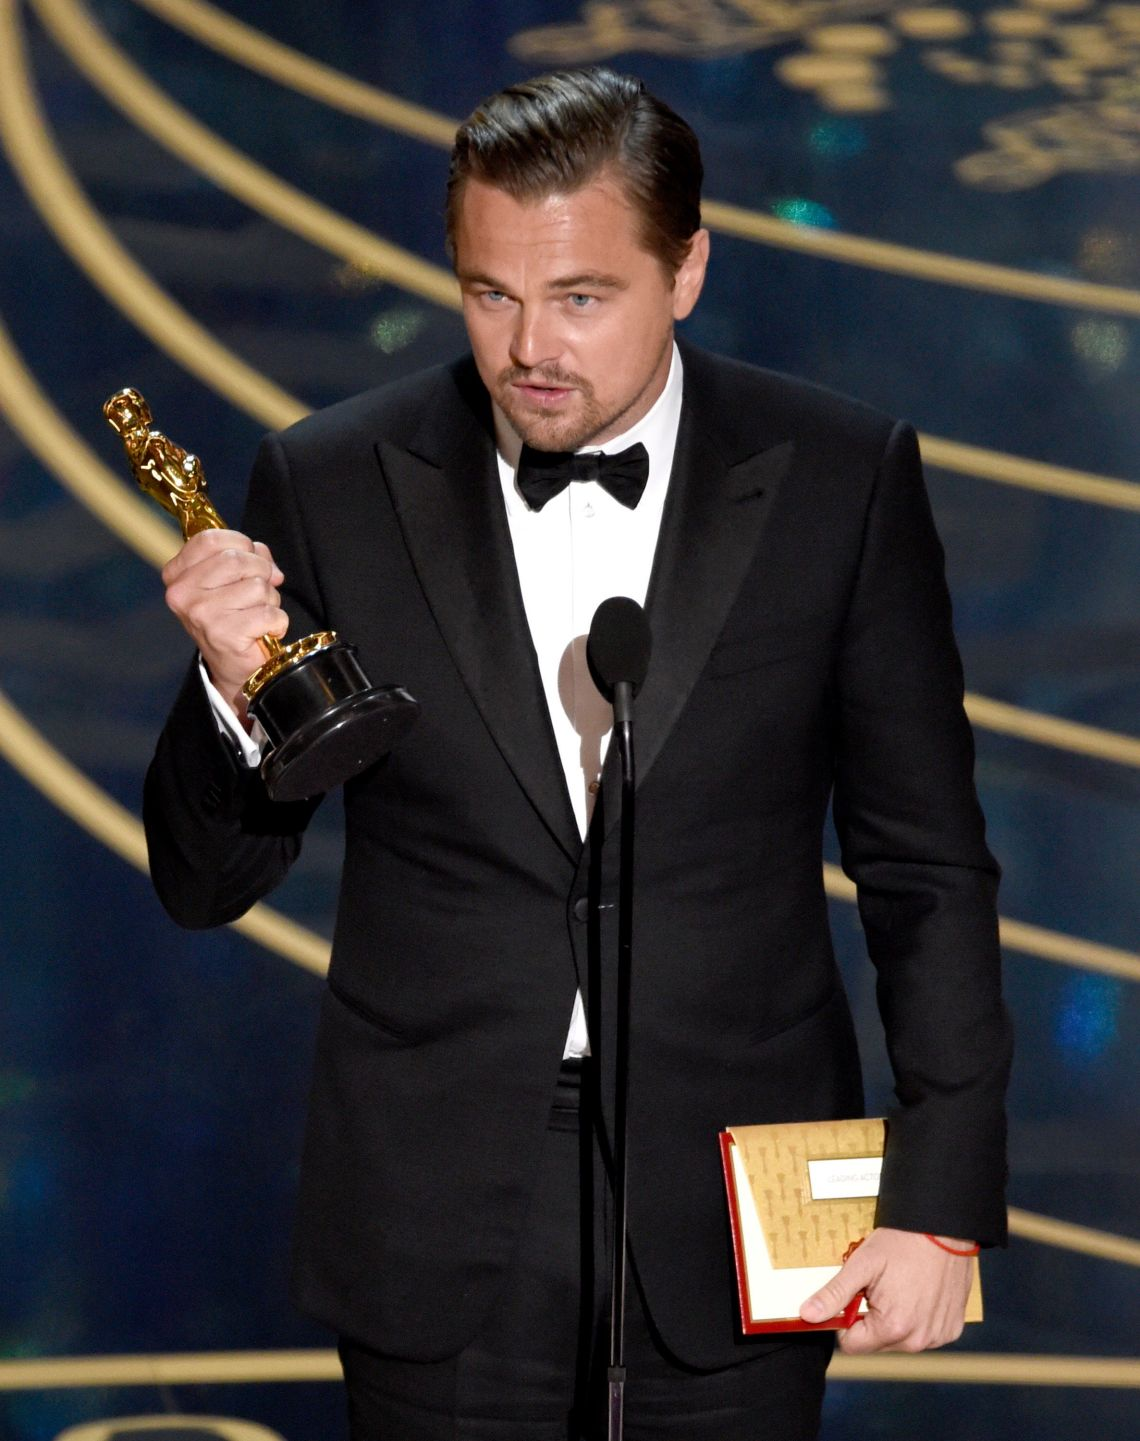 The road to Leonardo DiCaprio's Oscars win was a long one, consisting of a total of six nominations spread out over 12 years.In 2016, the whole world was rooting for Leo, and he eventually landed the Academy Award for his role in The Revevnant, using his acceptance speech to shine a light on environmental issues, a cause close to his heart.